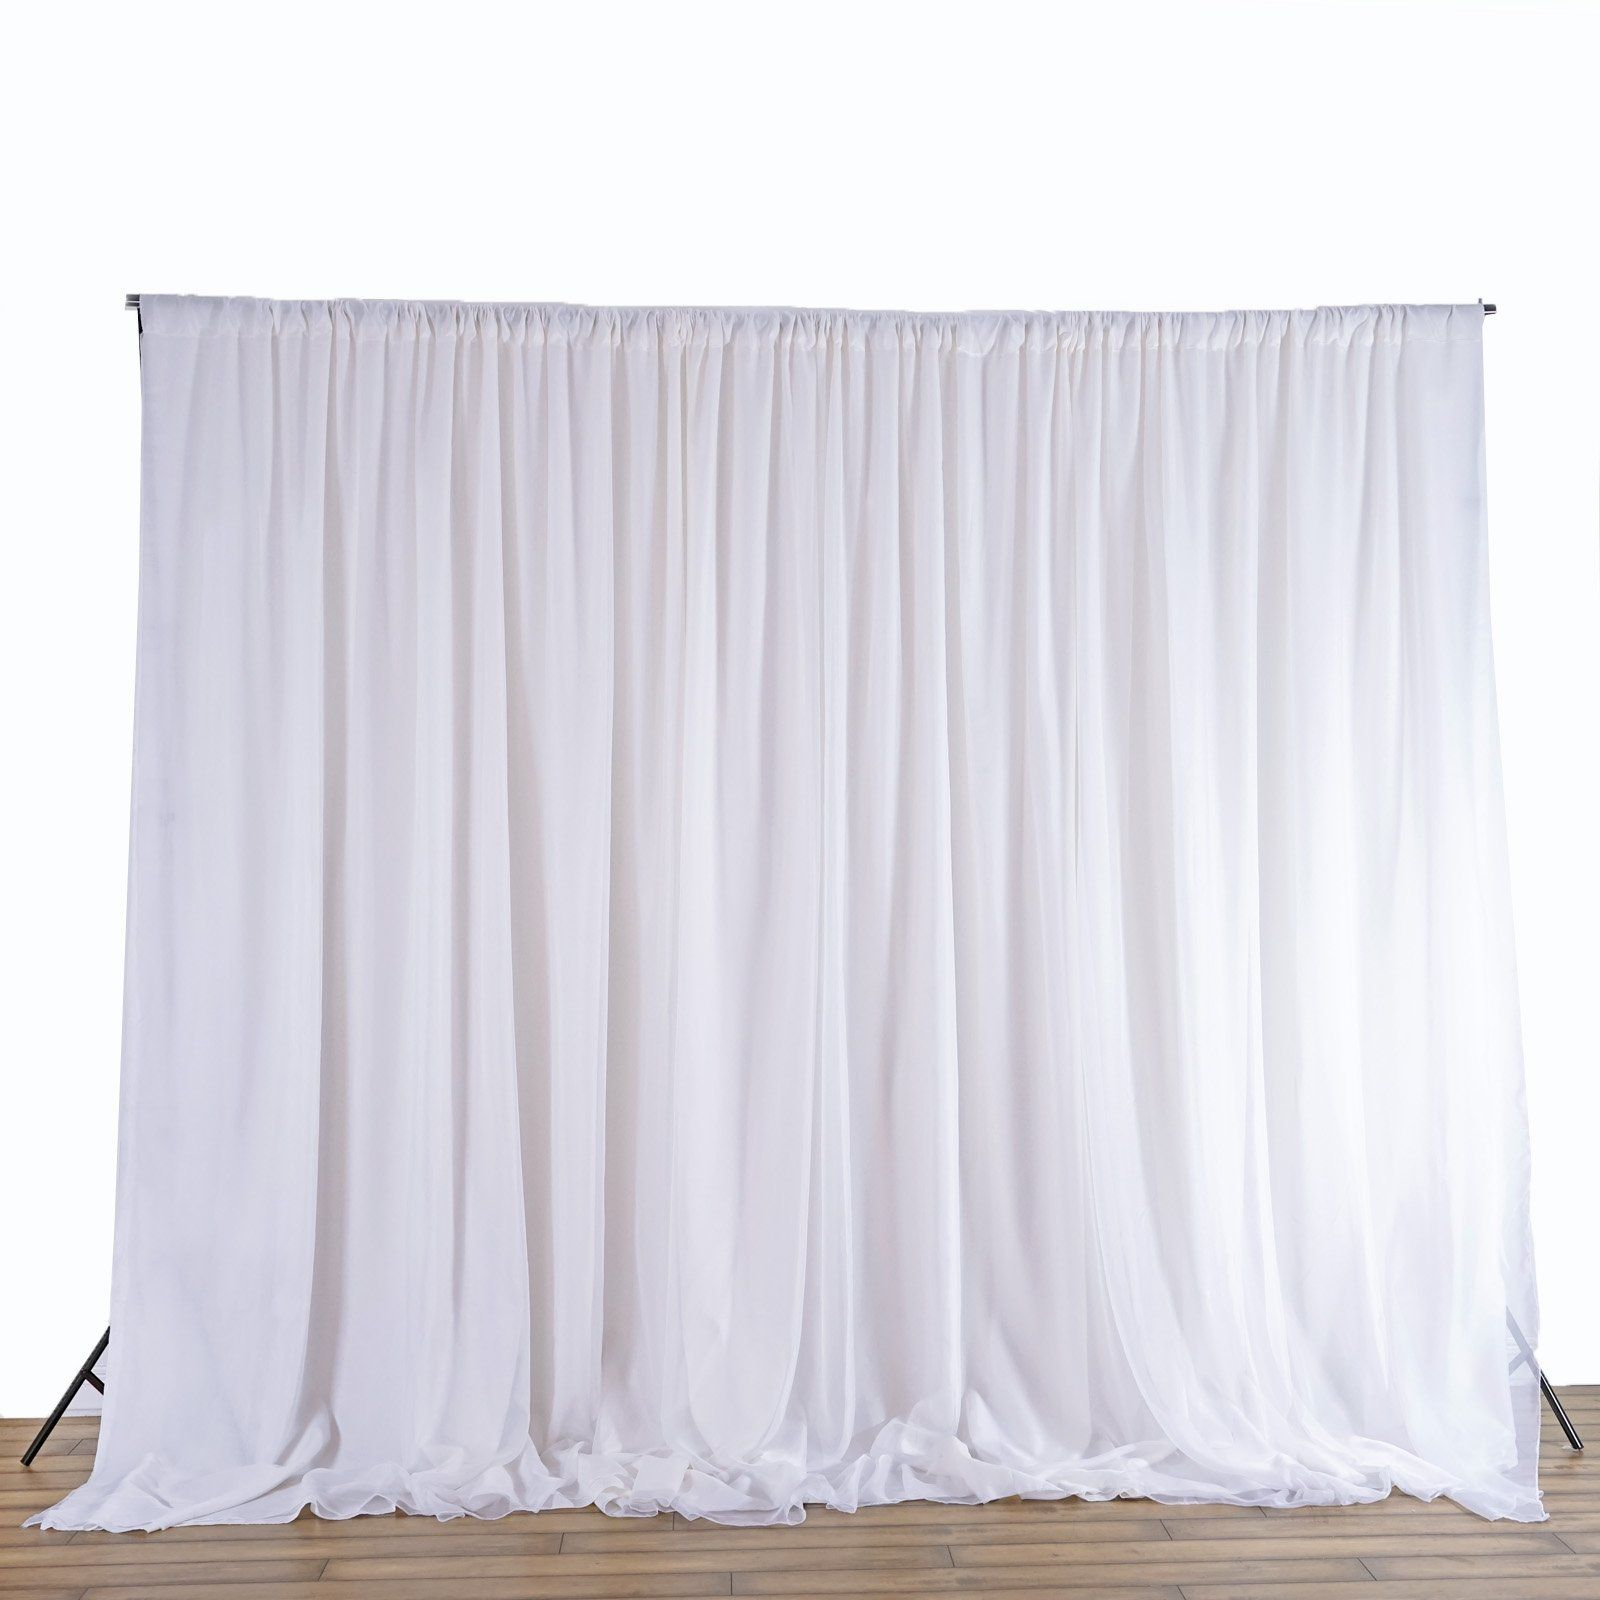 Balsacircle 20 Feet X 10 Feet White Fabric Backdrop Drapes Curtains Wedding Ceremony Event Party Photo Booth Fabric Backdrop Curtain Backdrops Drapes Curtains